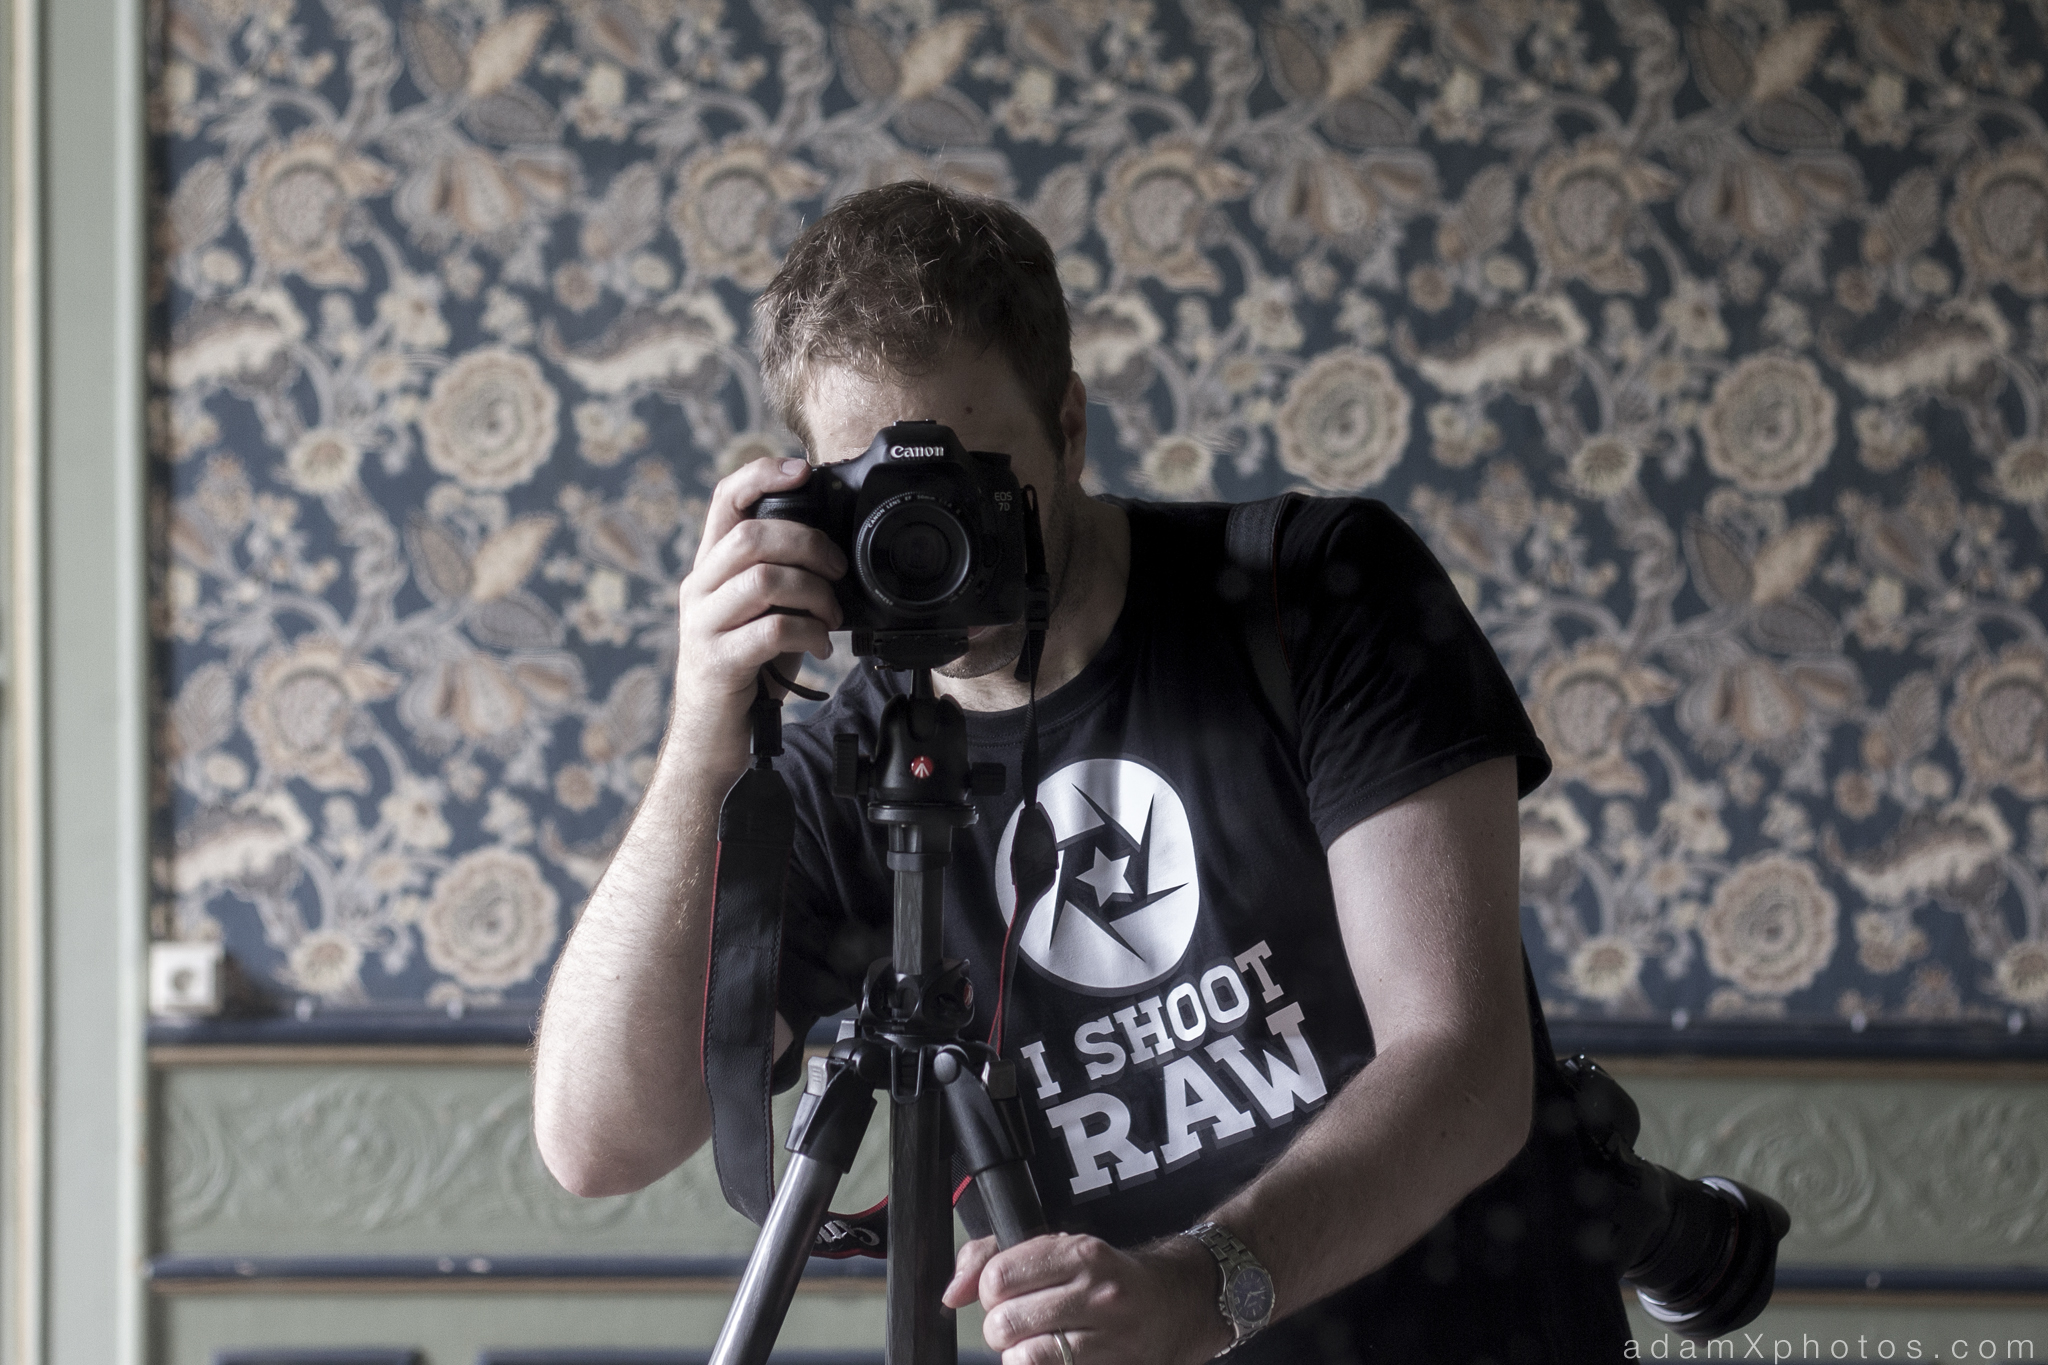 Adam X Chateau de la Chapelle urbex urban exploration belgium abandoned selfie self portrait I shoot raw Canon